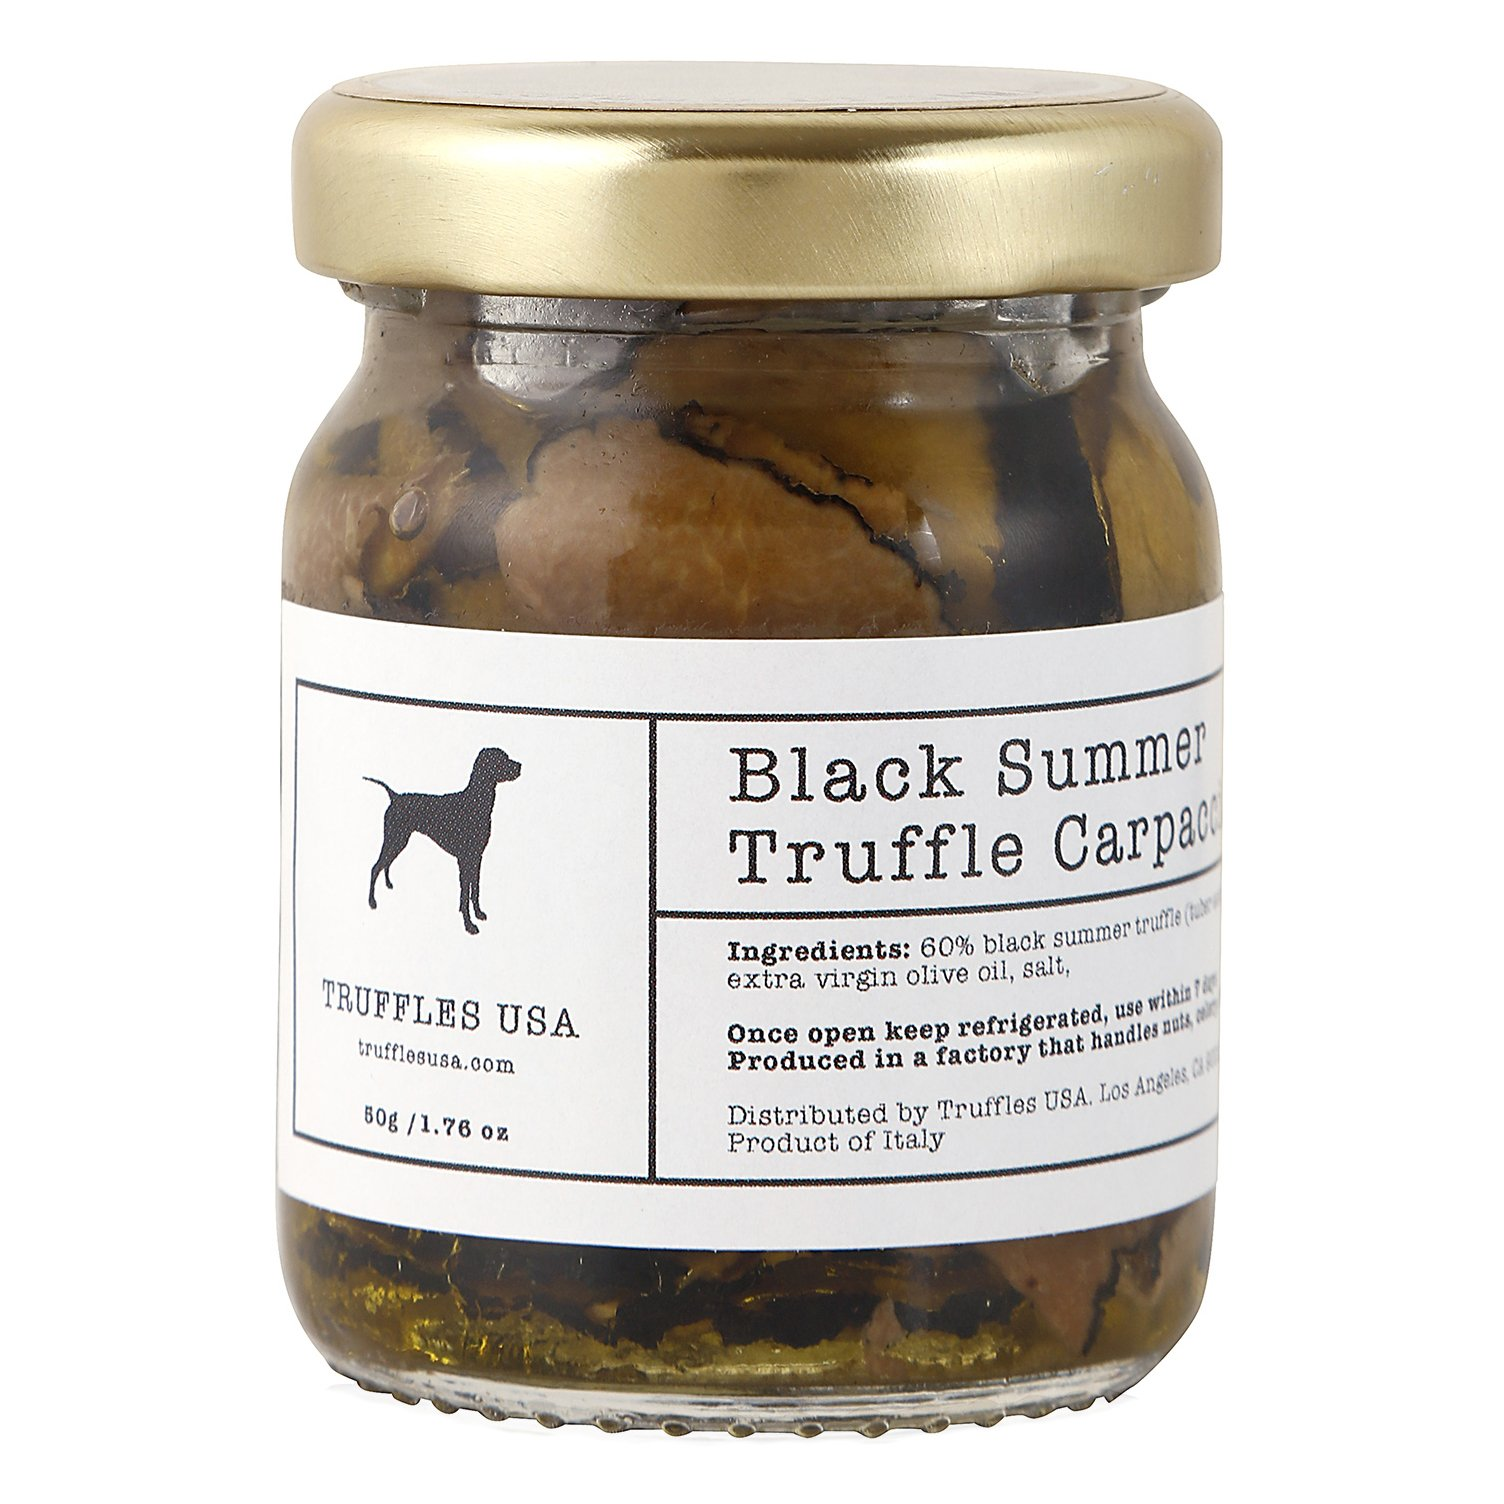 TRUFFLES USA Black Truffle Slices Carpaccio 1.76 oz - Imported from Italy - Specialty Truffle slices in Extra Virgin Olive Oil - Vegetarian - Gluten Free - Kosher